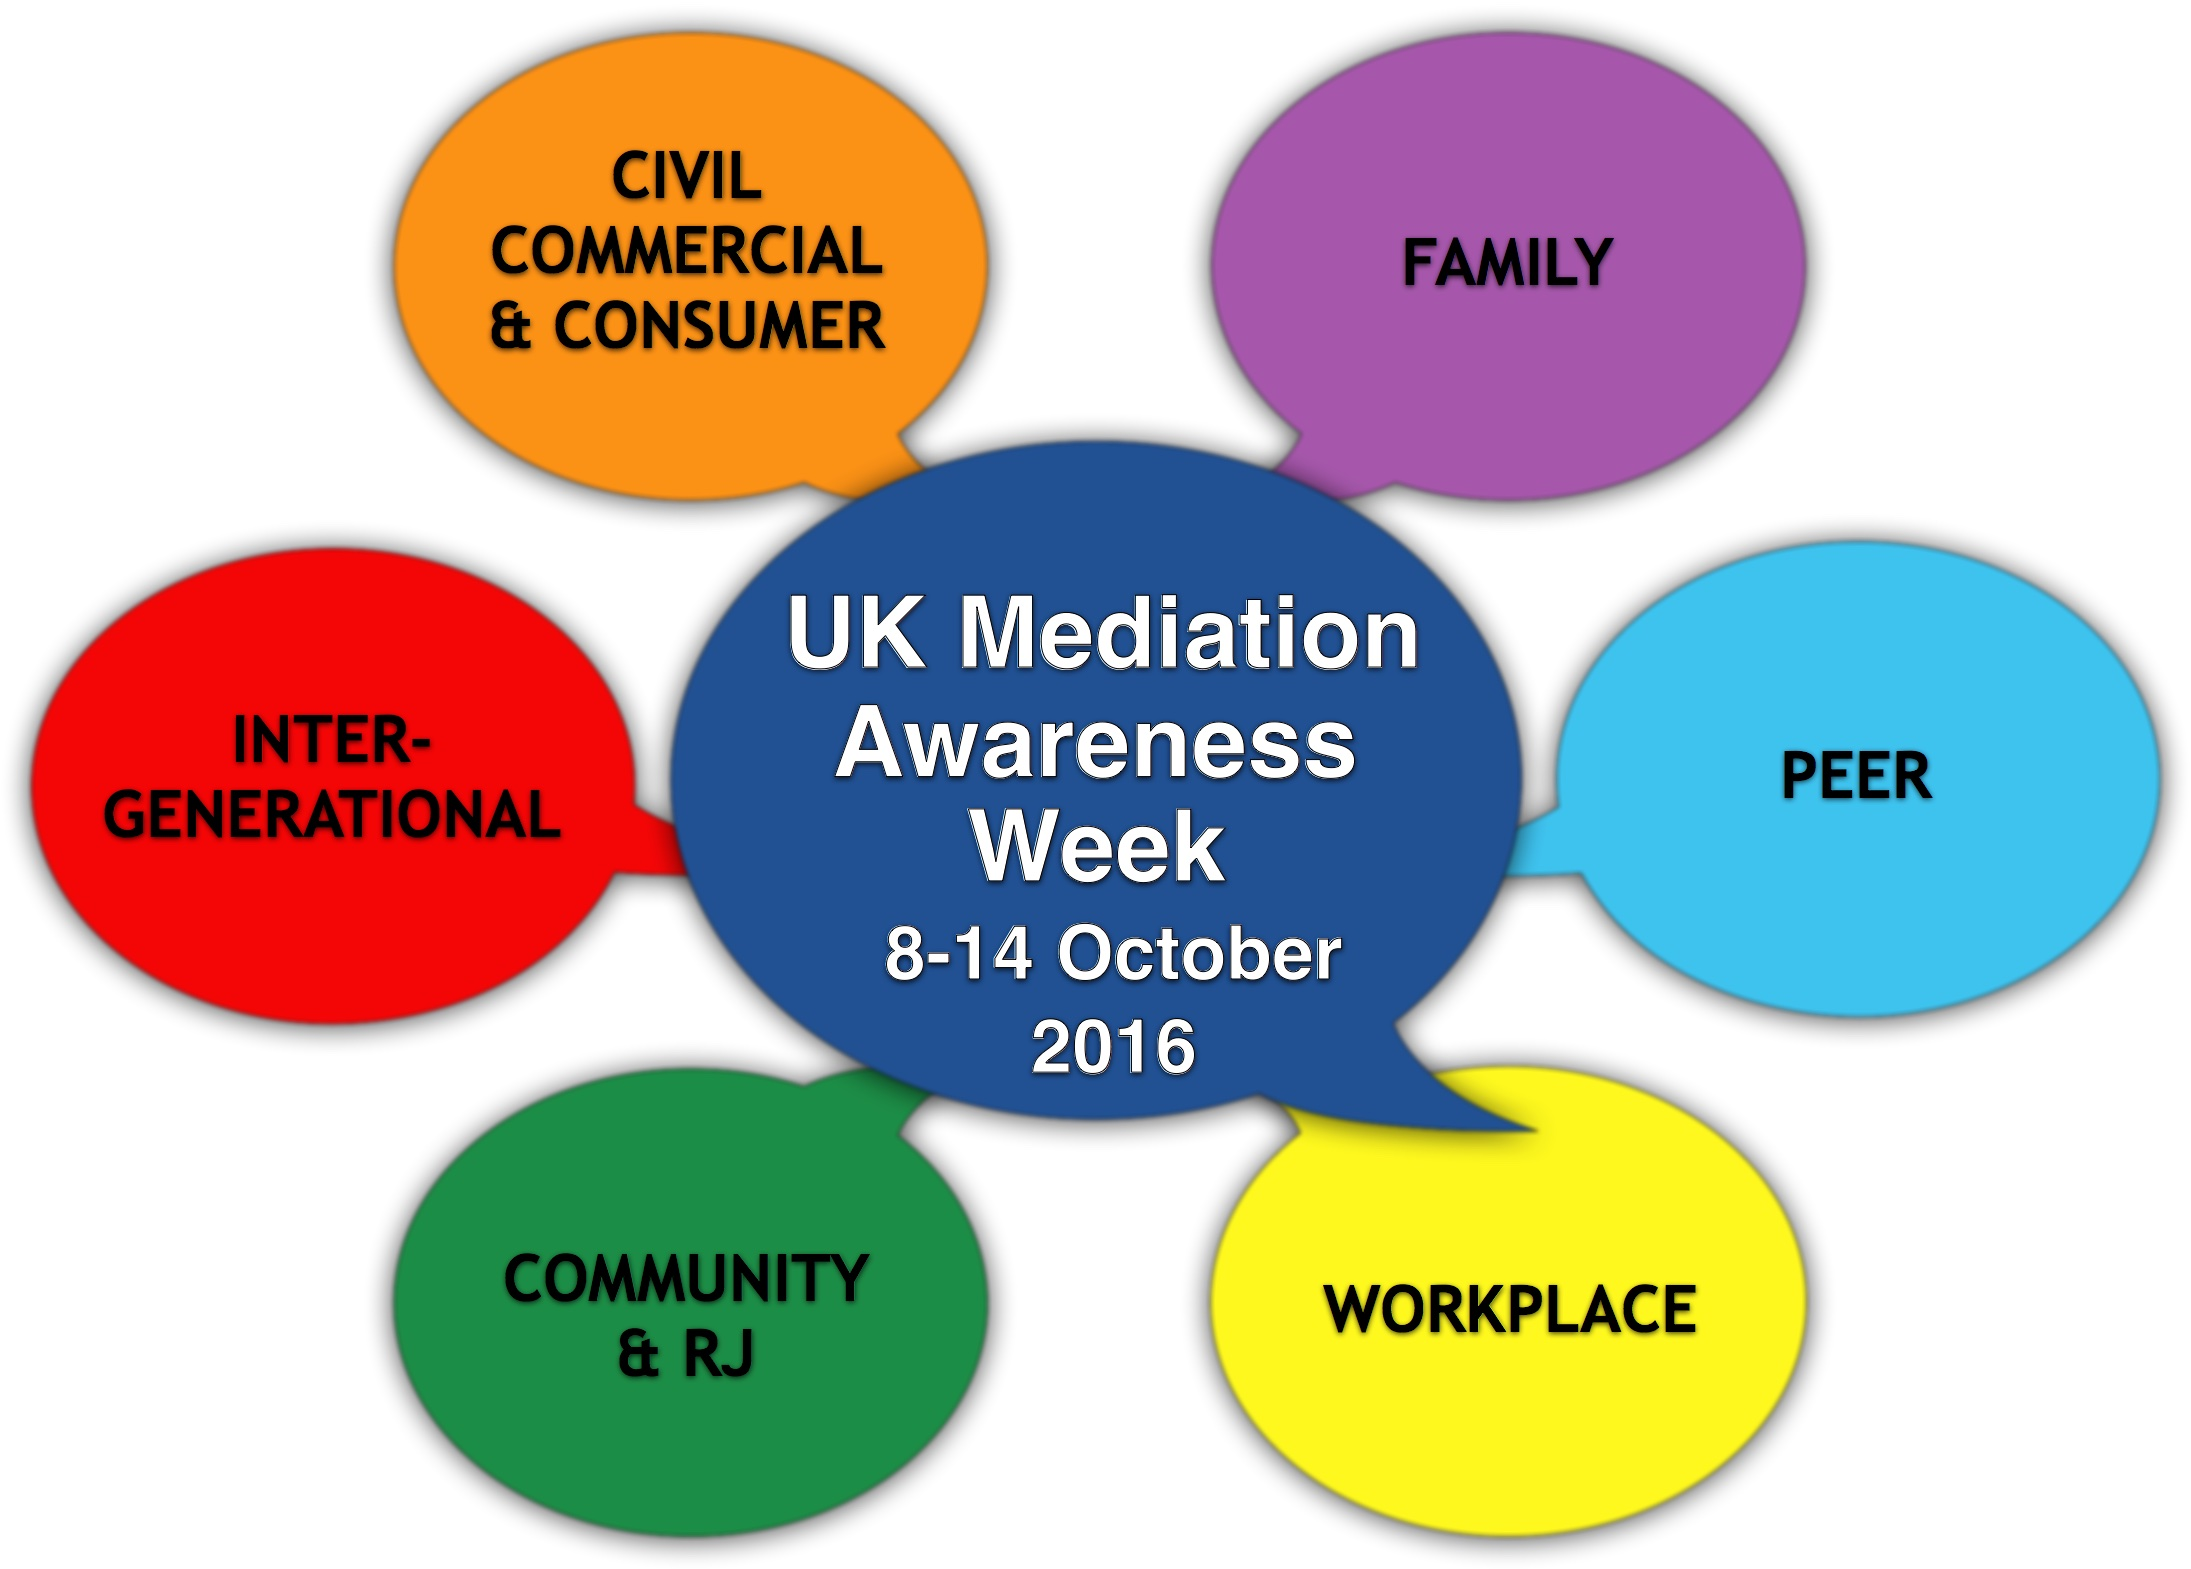 Mediation week